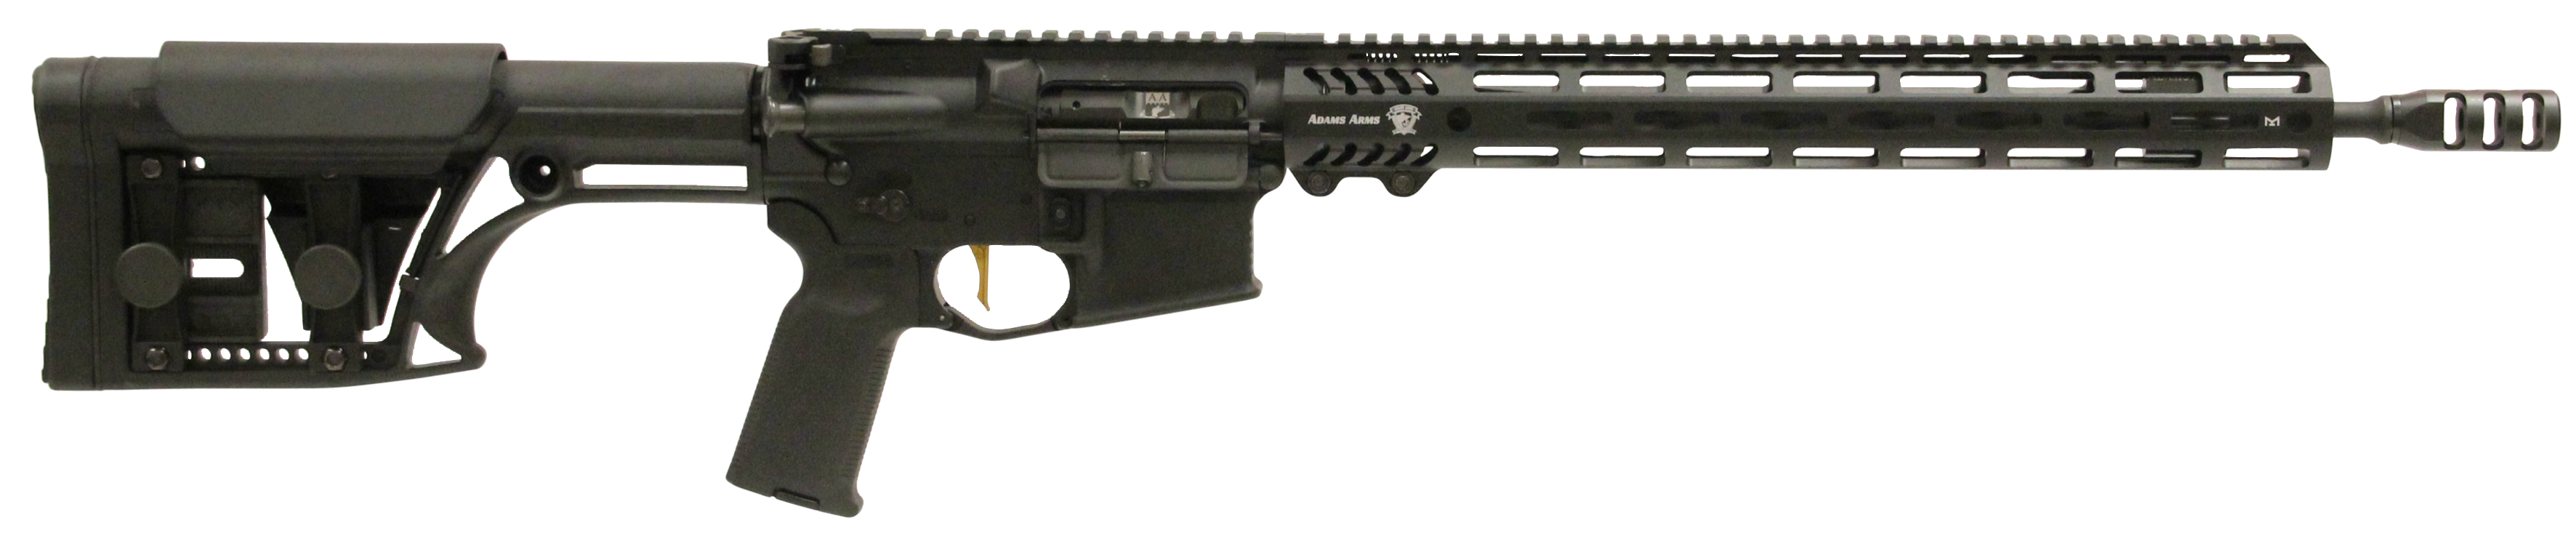 Adams Arms FGAA00241 P3 Rifle Semi-Automatic 223 Remington/5.56 NATO 16.5